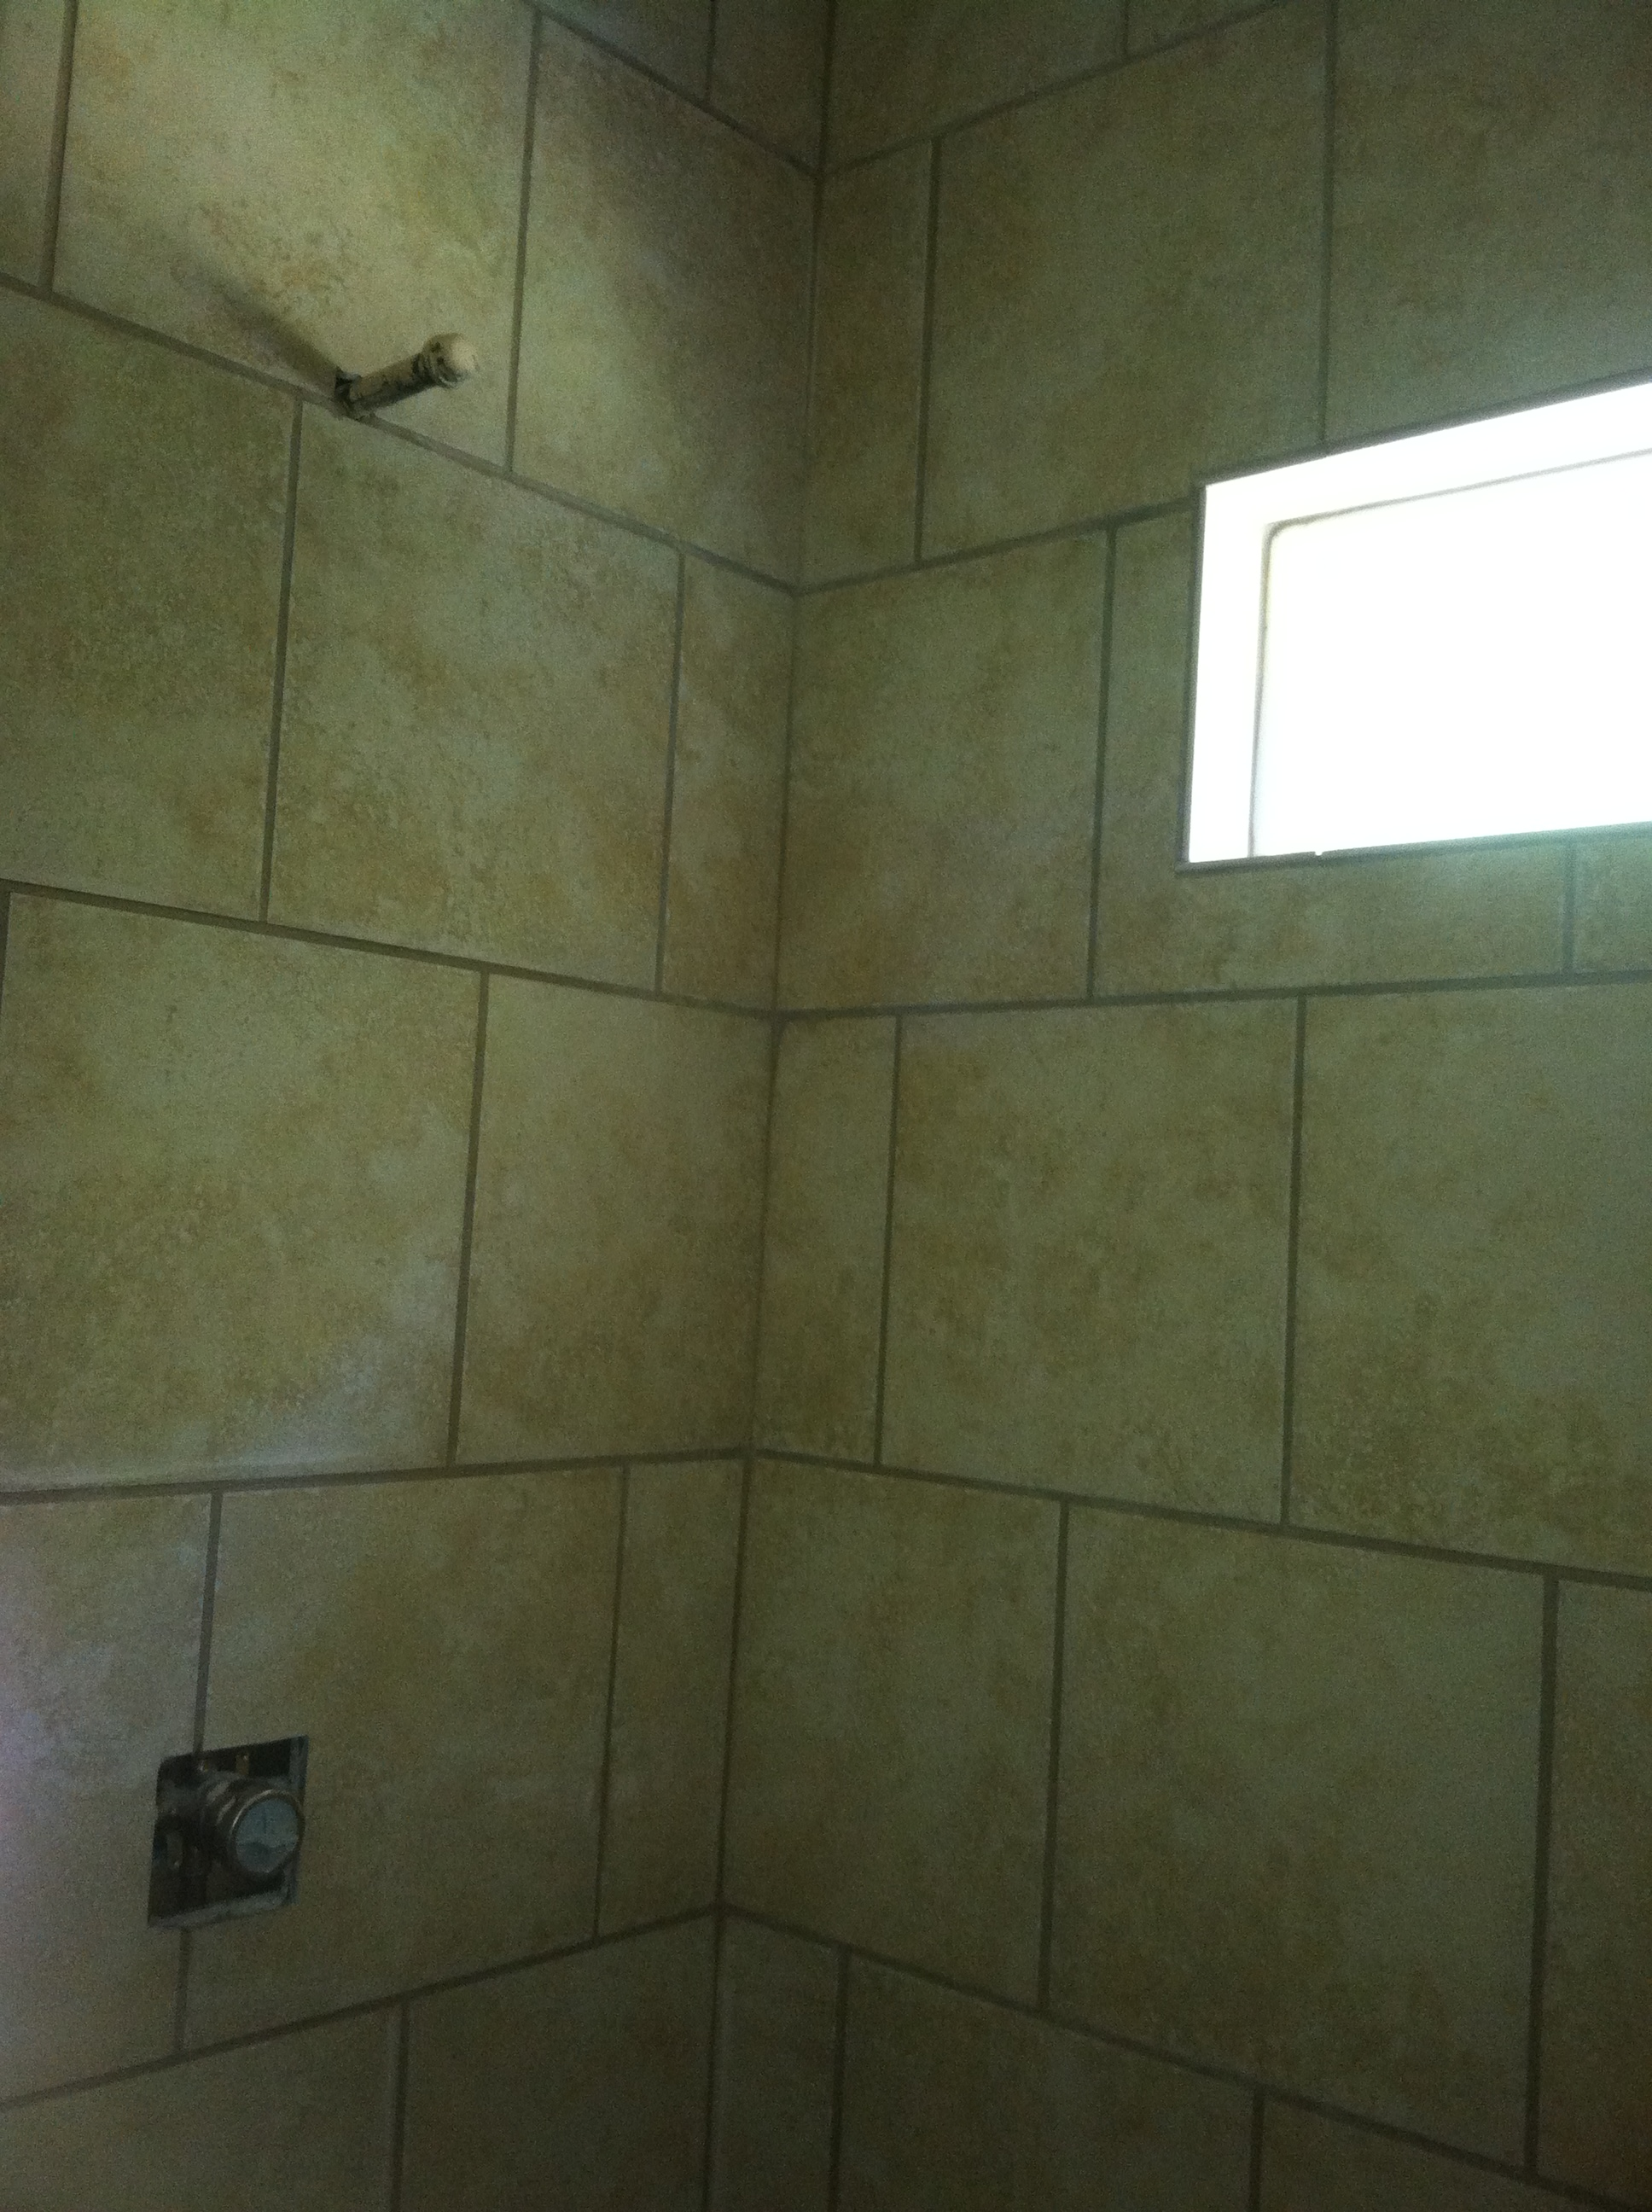 Stone And Tile Are A Natural Choice For Beautiful Clean Long Lasting Bathroom Surface Roma Construction Llc Is The Company To Install Bath Of